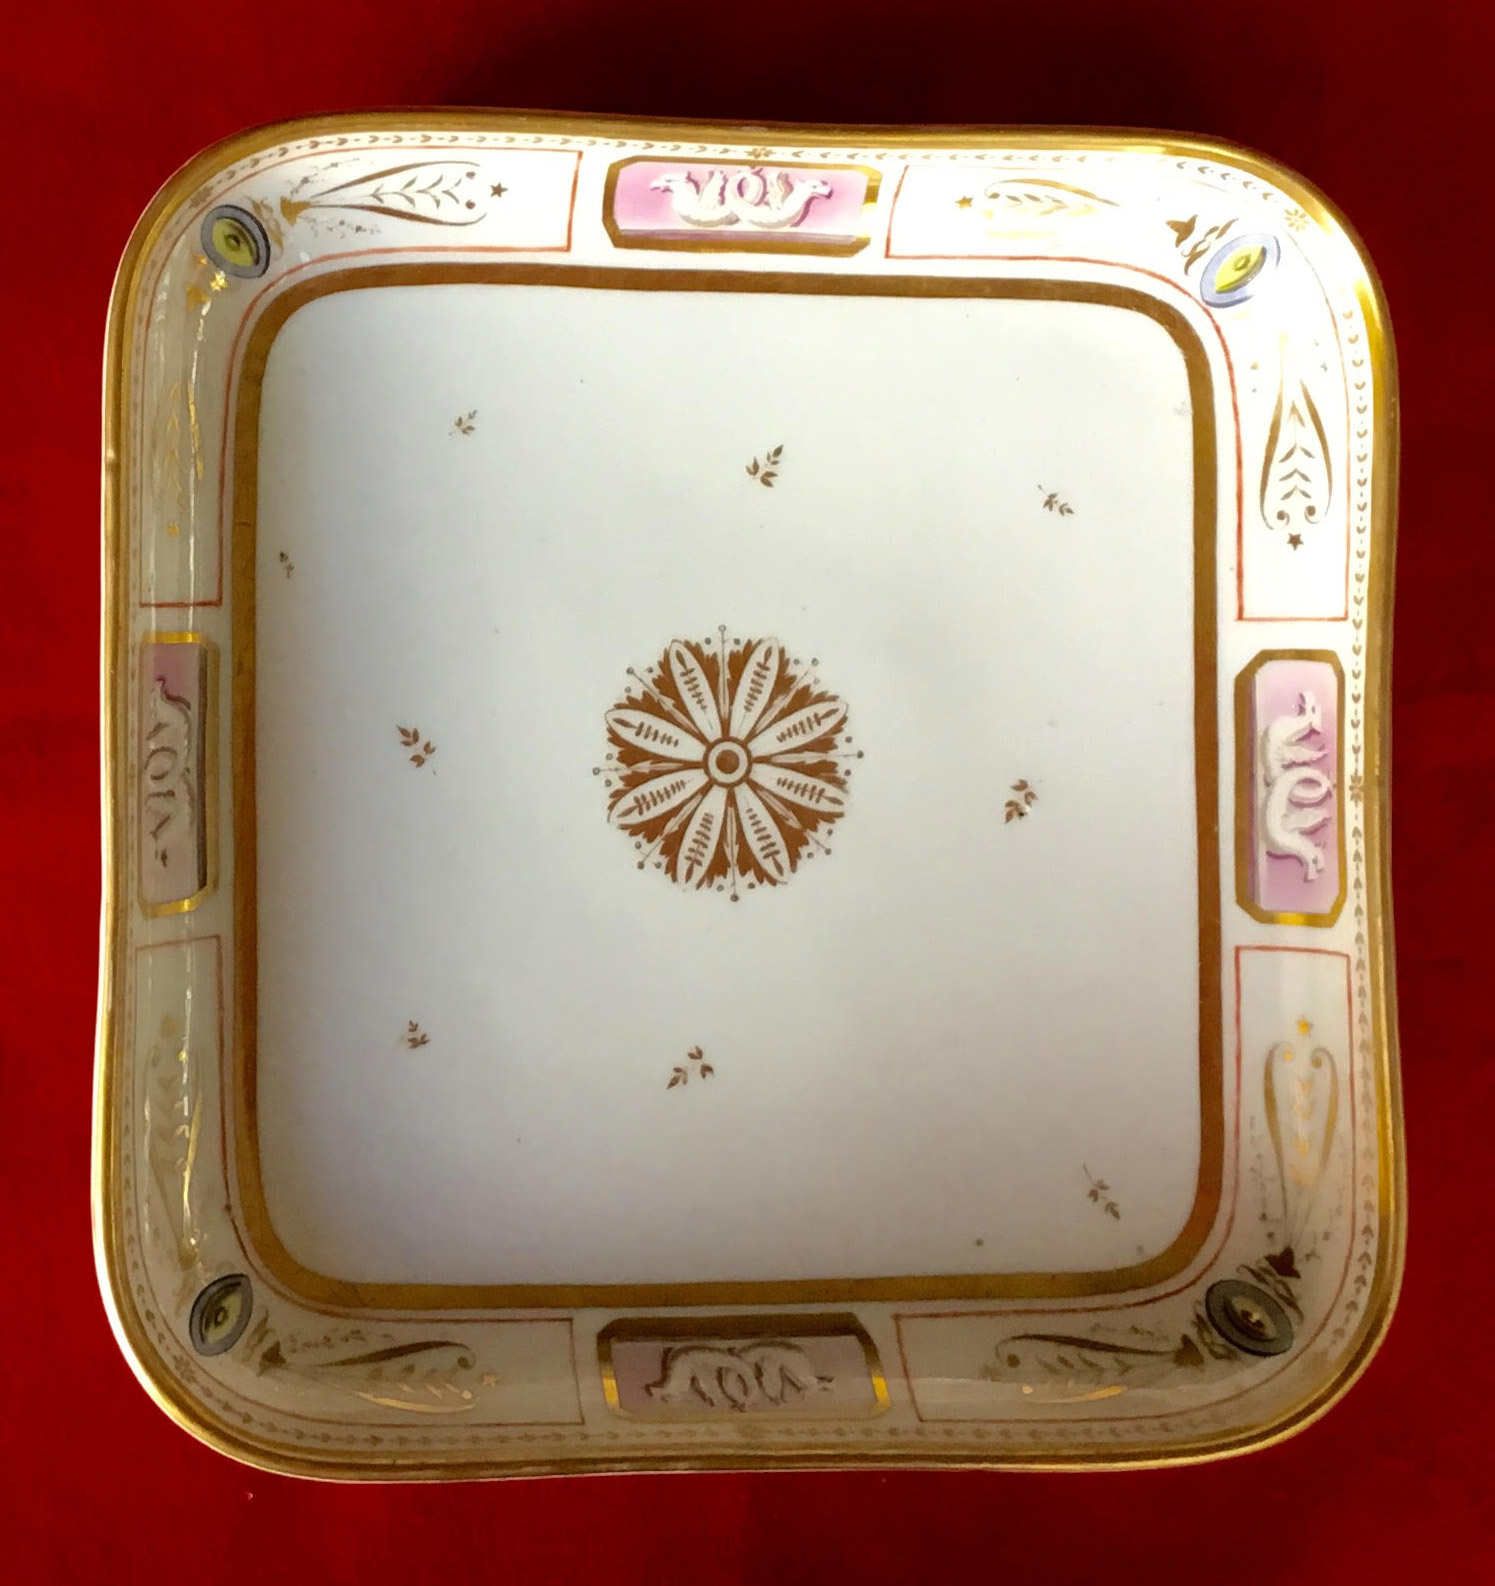 john quincy adams white house china service dinner plate